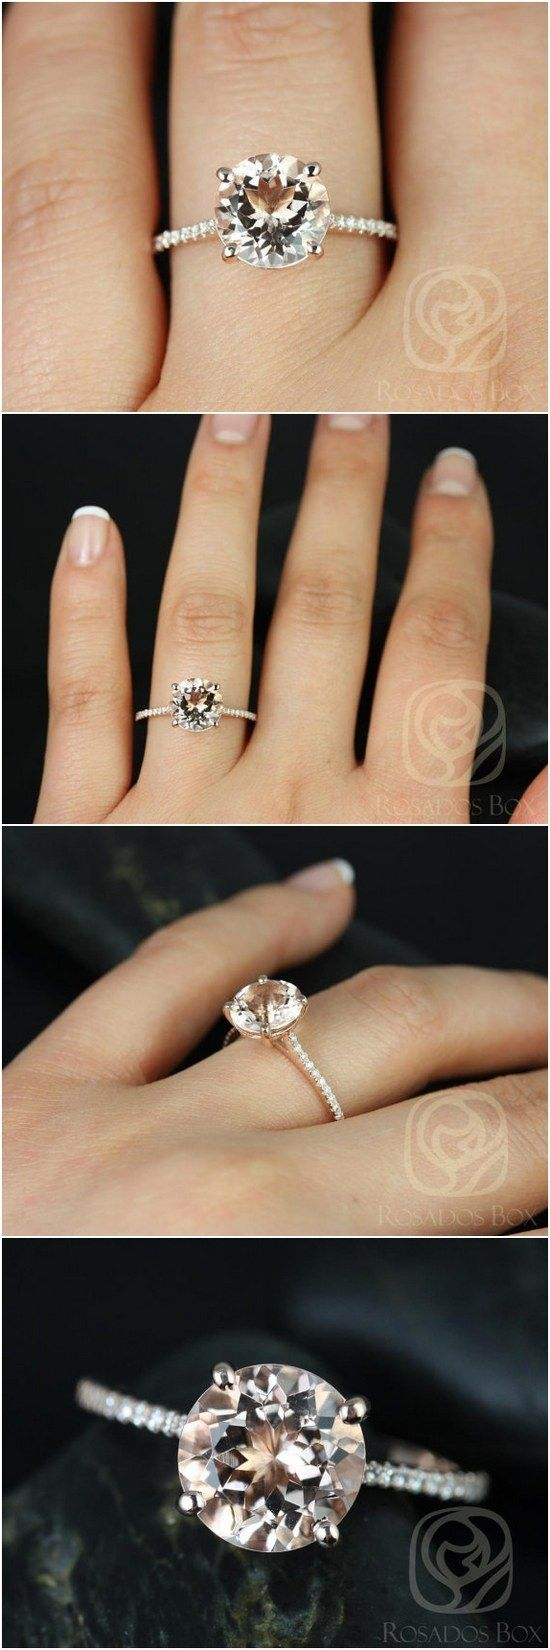 inexpensive wedding rings discount wedding rings 25 Best Ideas about Inexpensive Wedding Rings on Pinterest Inexpensive engagement rings Pretty engagement rings and Gold wedding rings